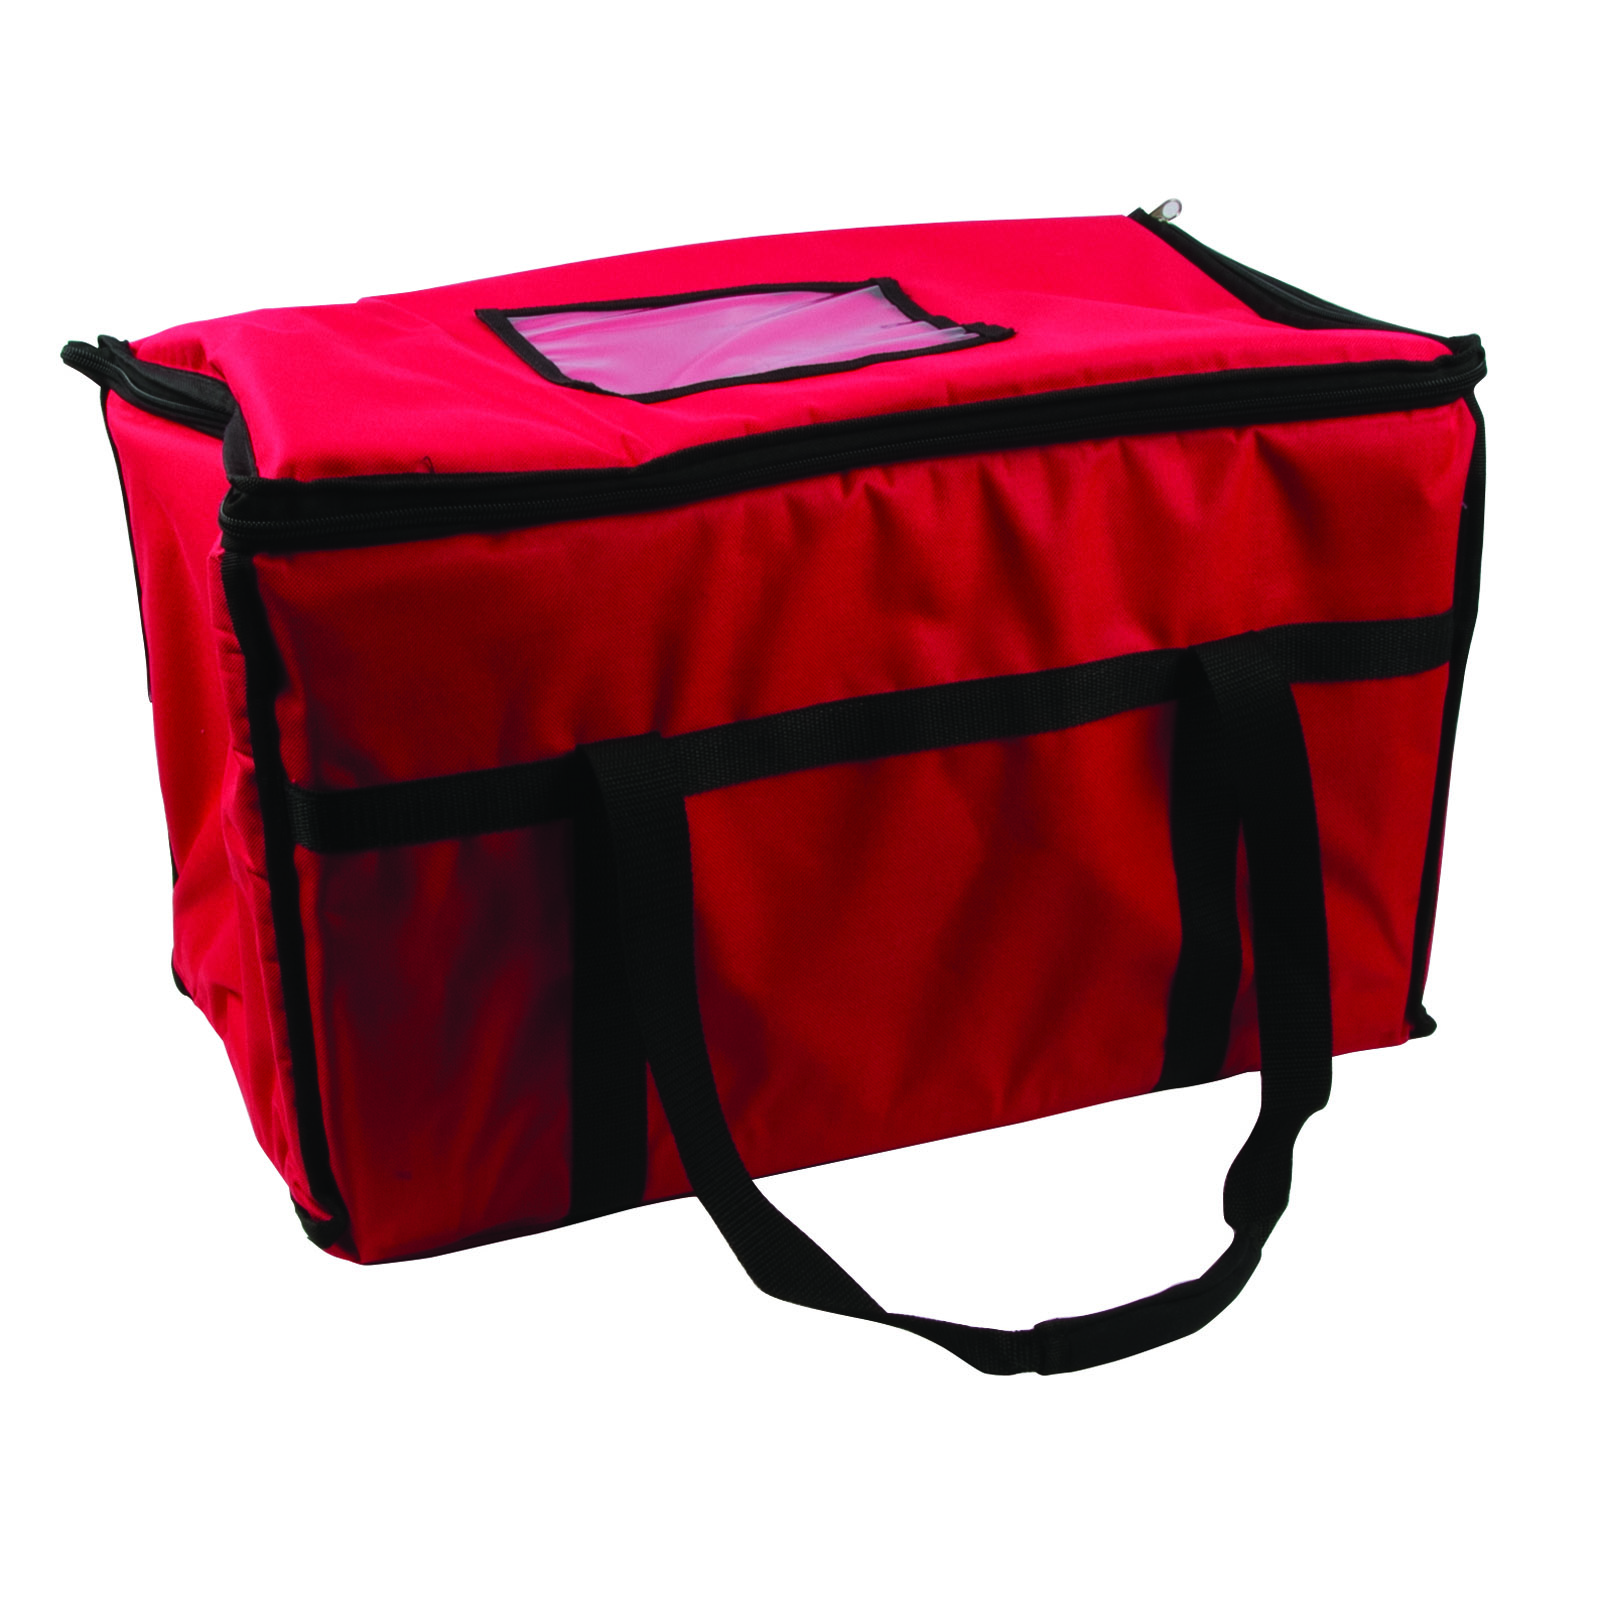 San Jamar FC2212-RD food carrier, soft material